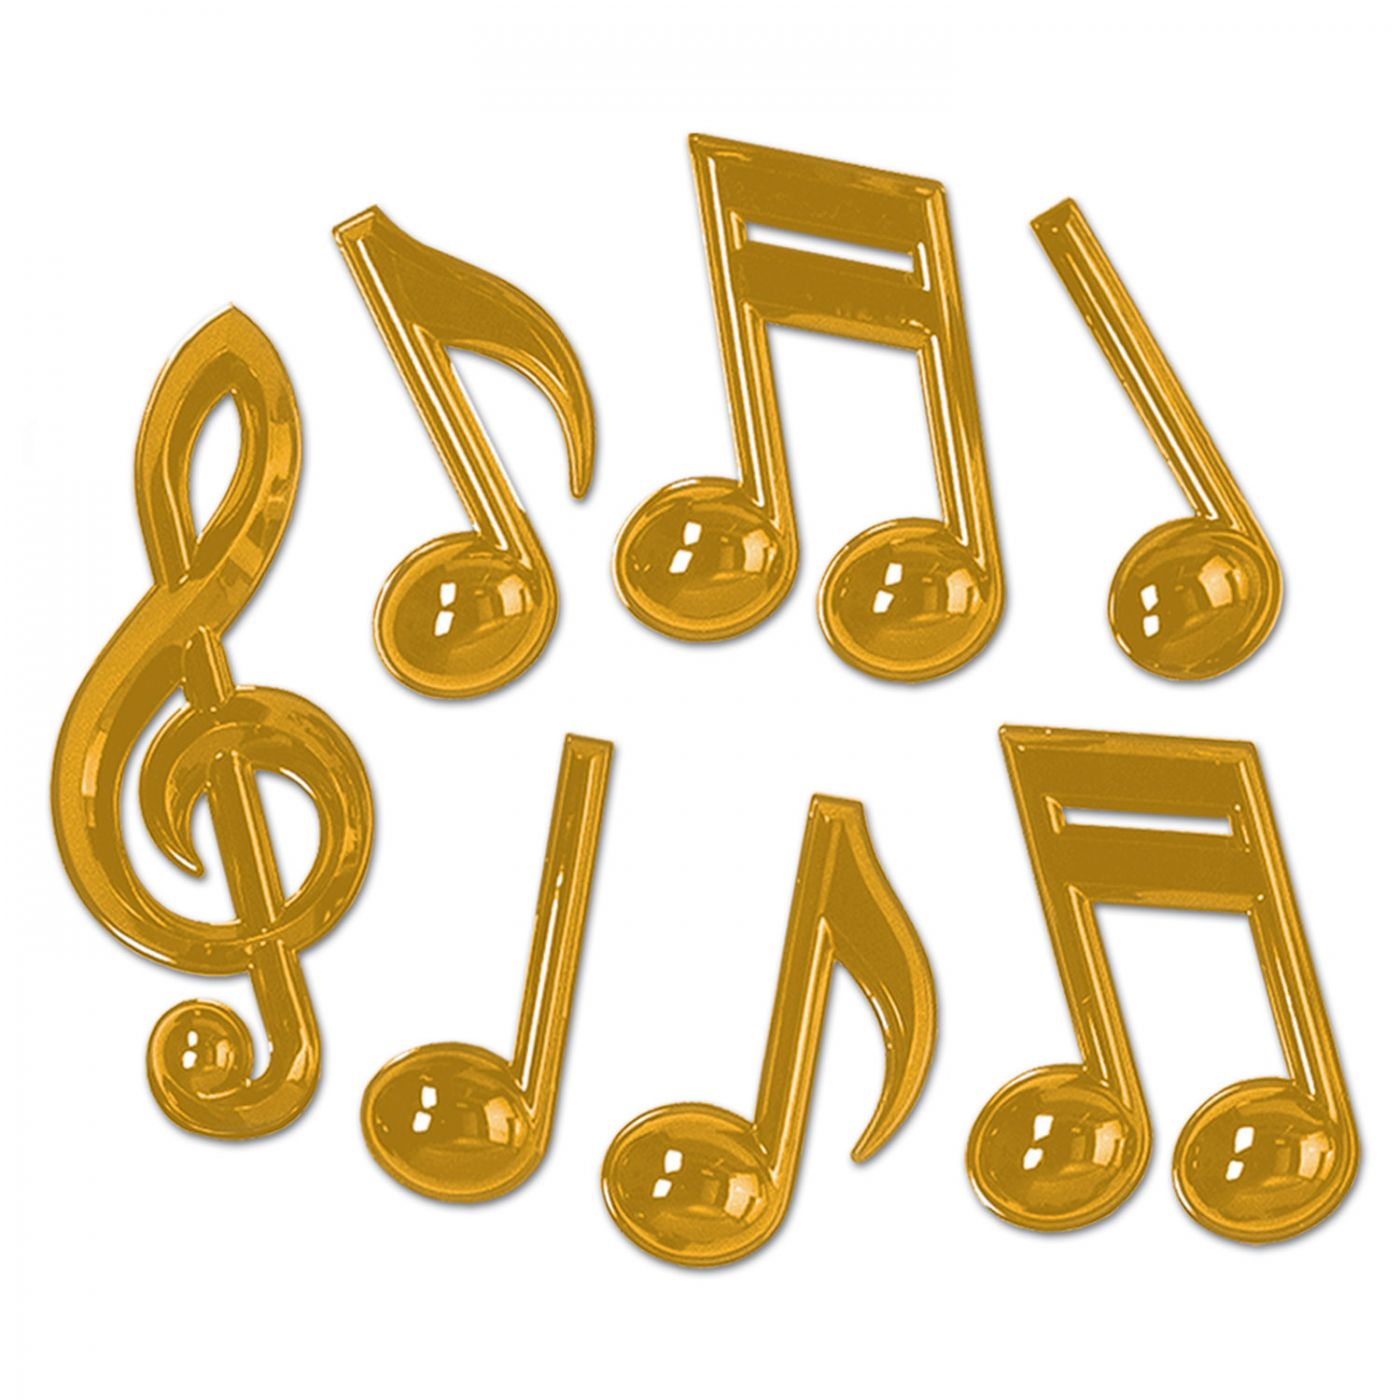 Gold Plastic Musical Notes image